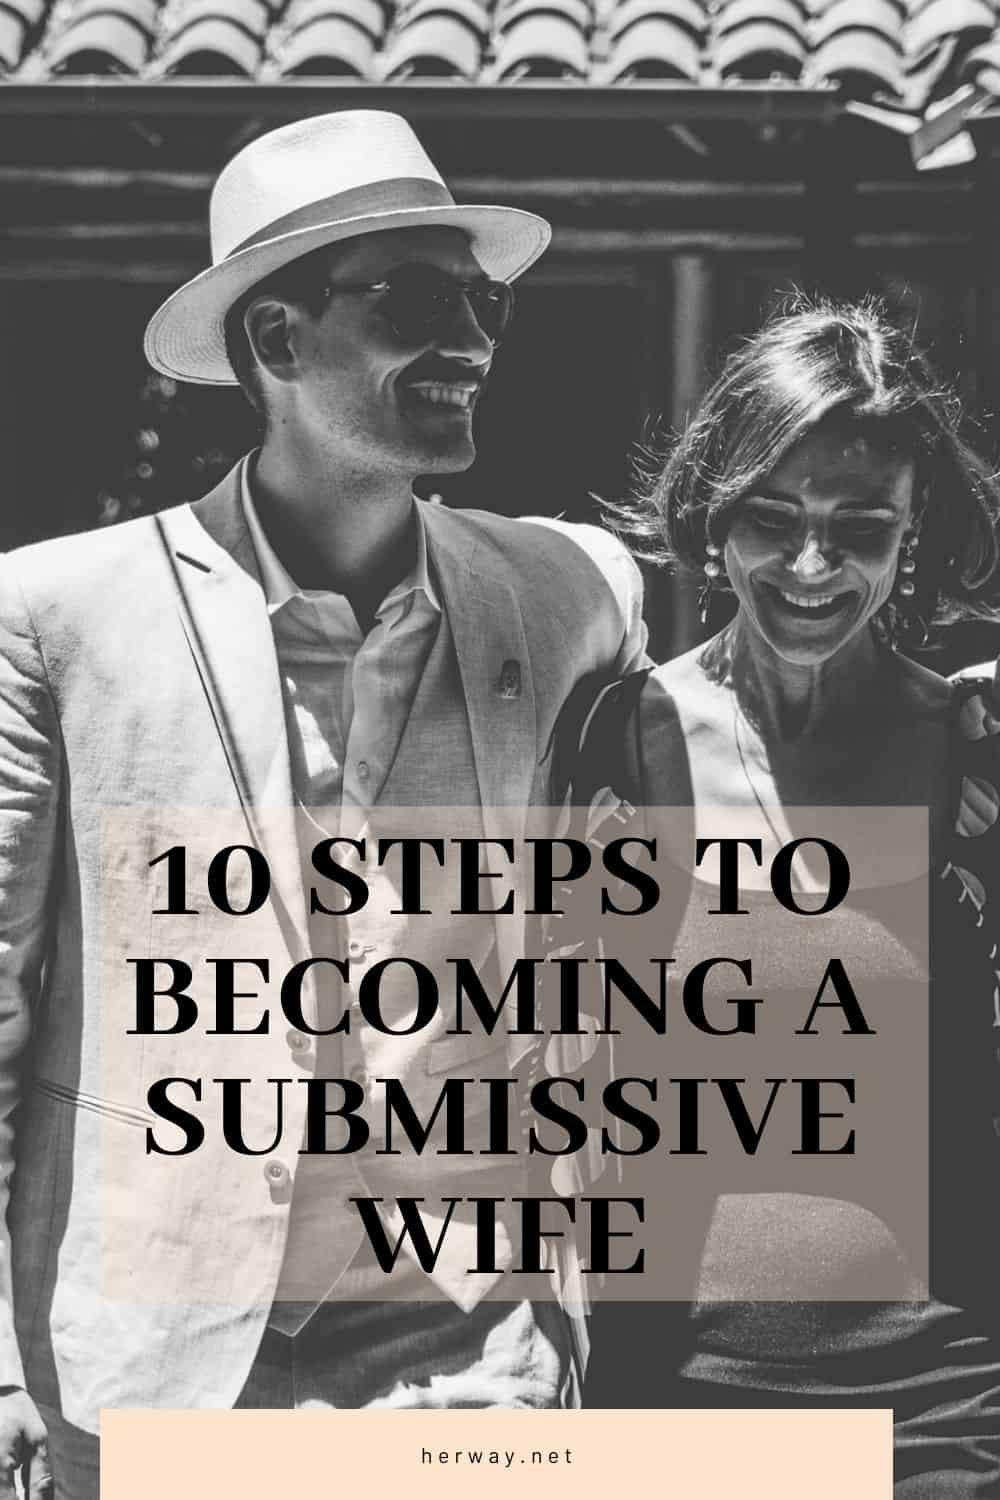 10 Steps To Becoming A Submissive Wife